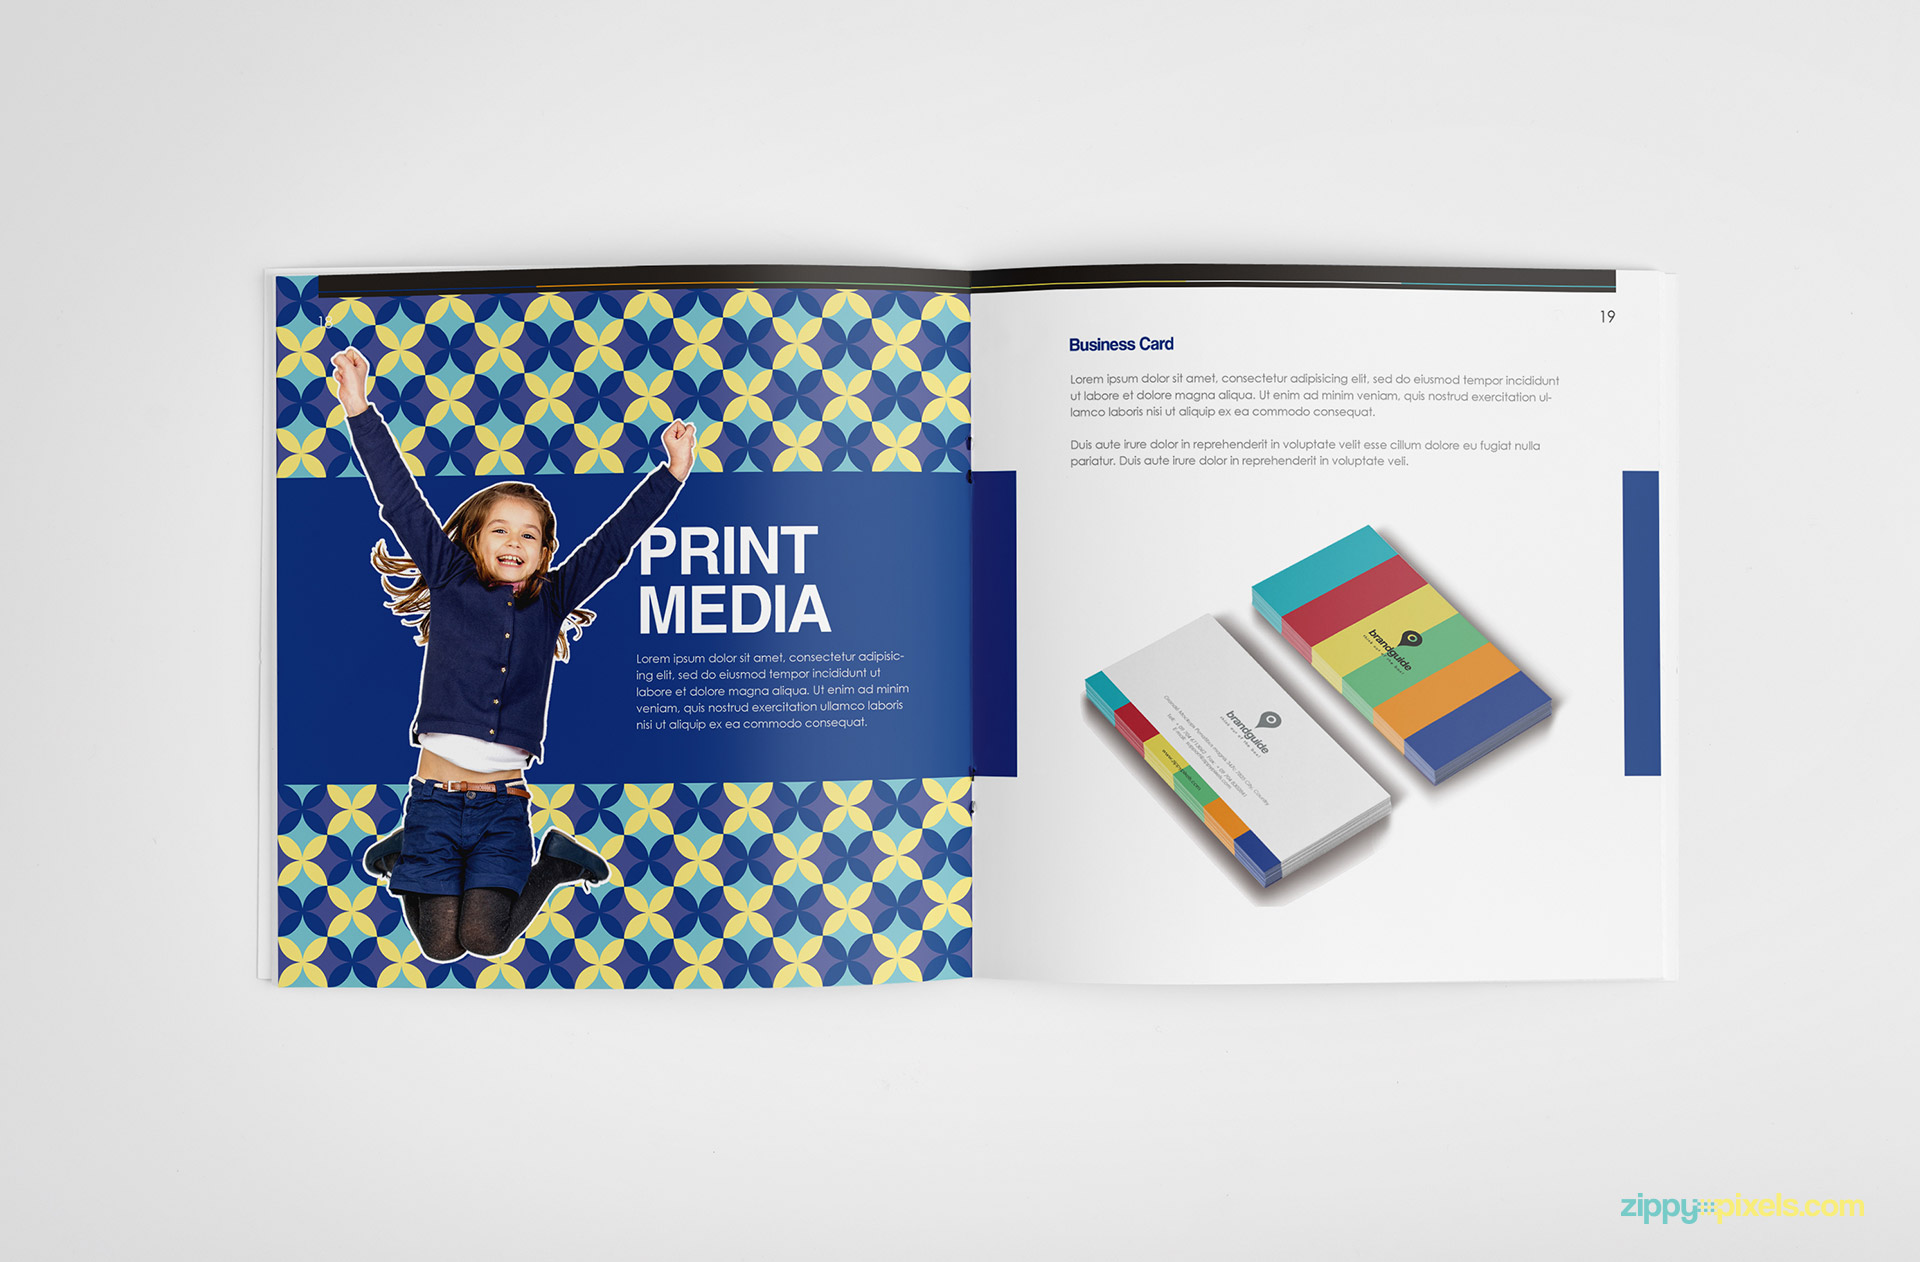 13-brand-book-12-print-media-business-card